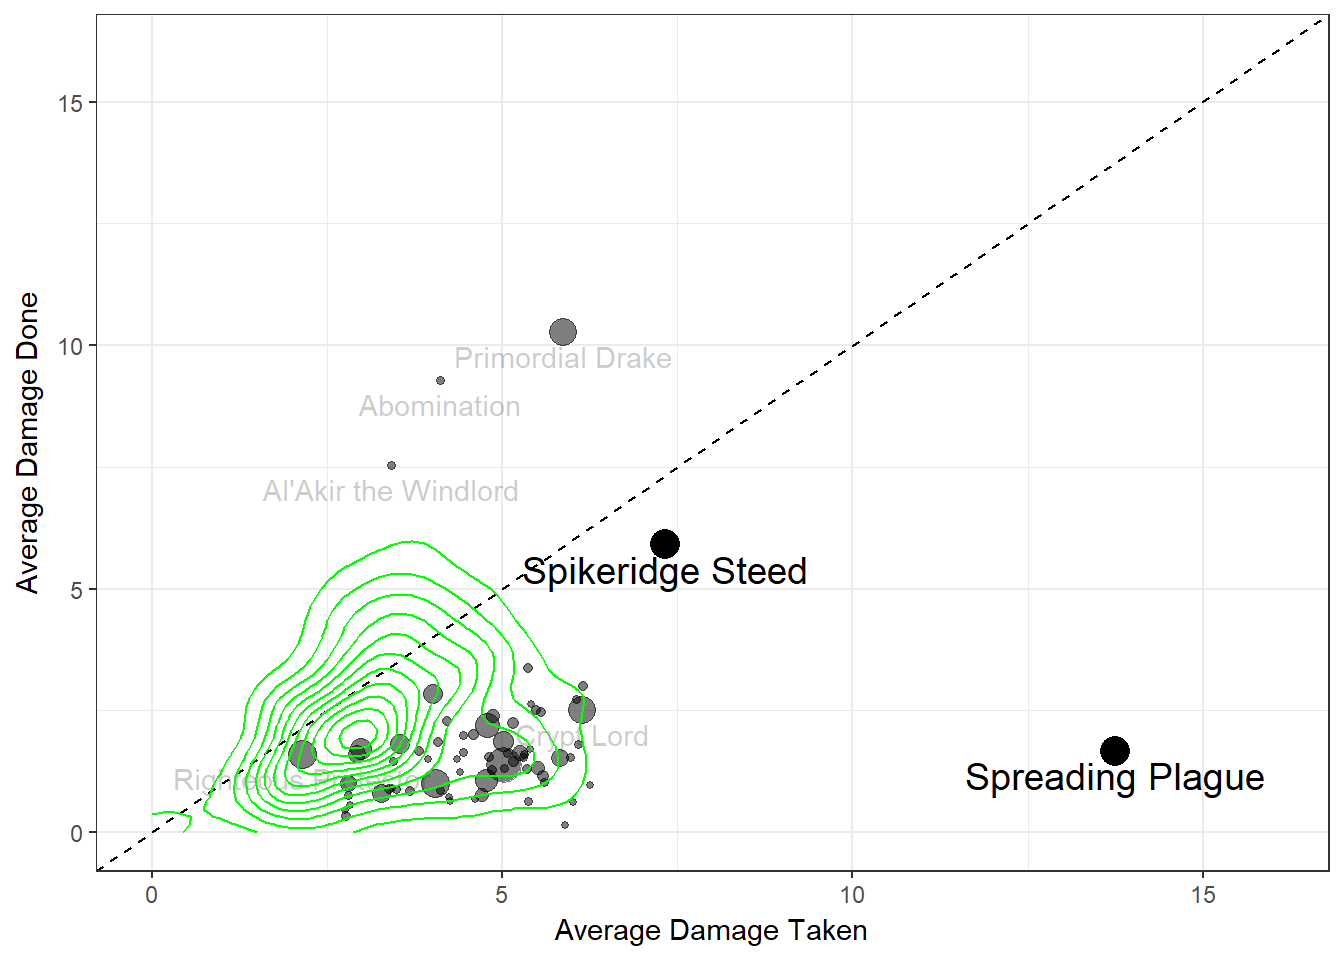 Figure 2: Average damage done vs. damage received for taunt minions, Spreading Plague and Spikeridged Steed. Density contours are taken from Figure 1.